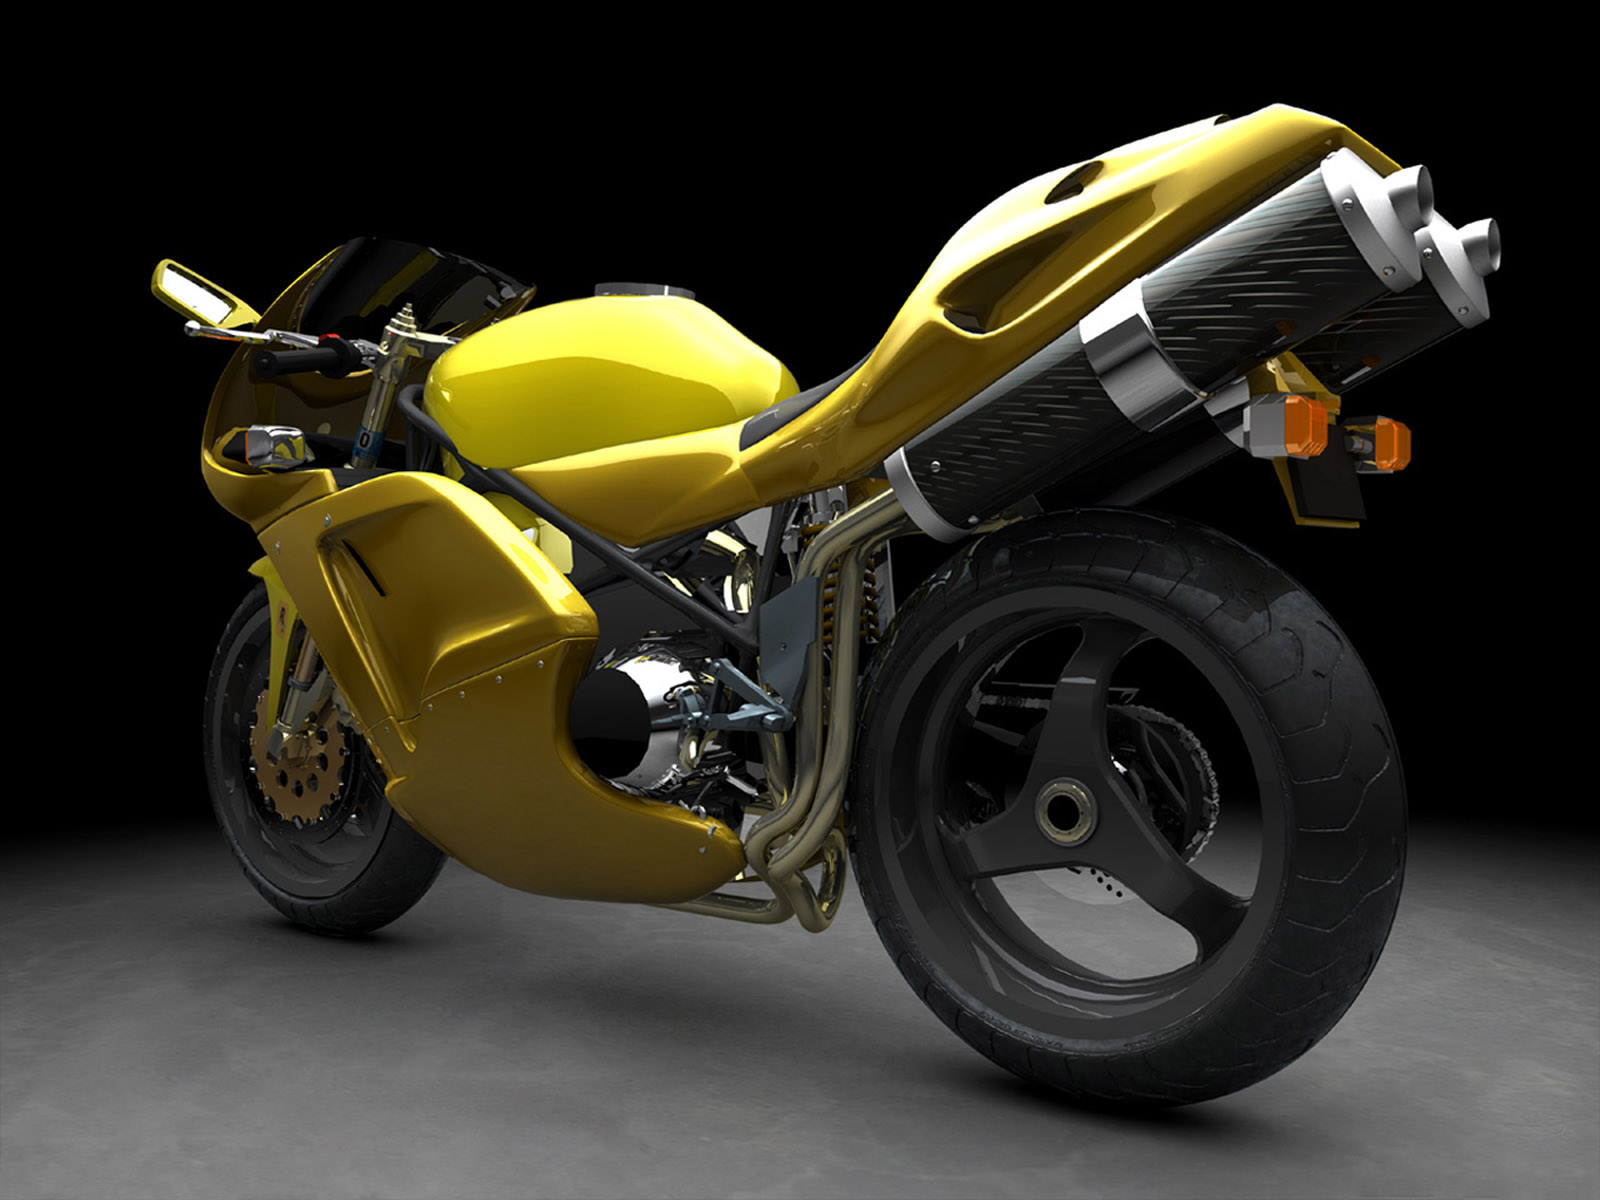 http://4.bp.blogspot.com/--sE-r04uAqI/TZScrd54_9I/AAAAAAAAB0I/eU_h2YZKad0/s1600/yellow-sports-bike-wallpapers_12042_1600x1200.jpg